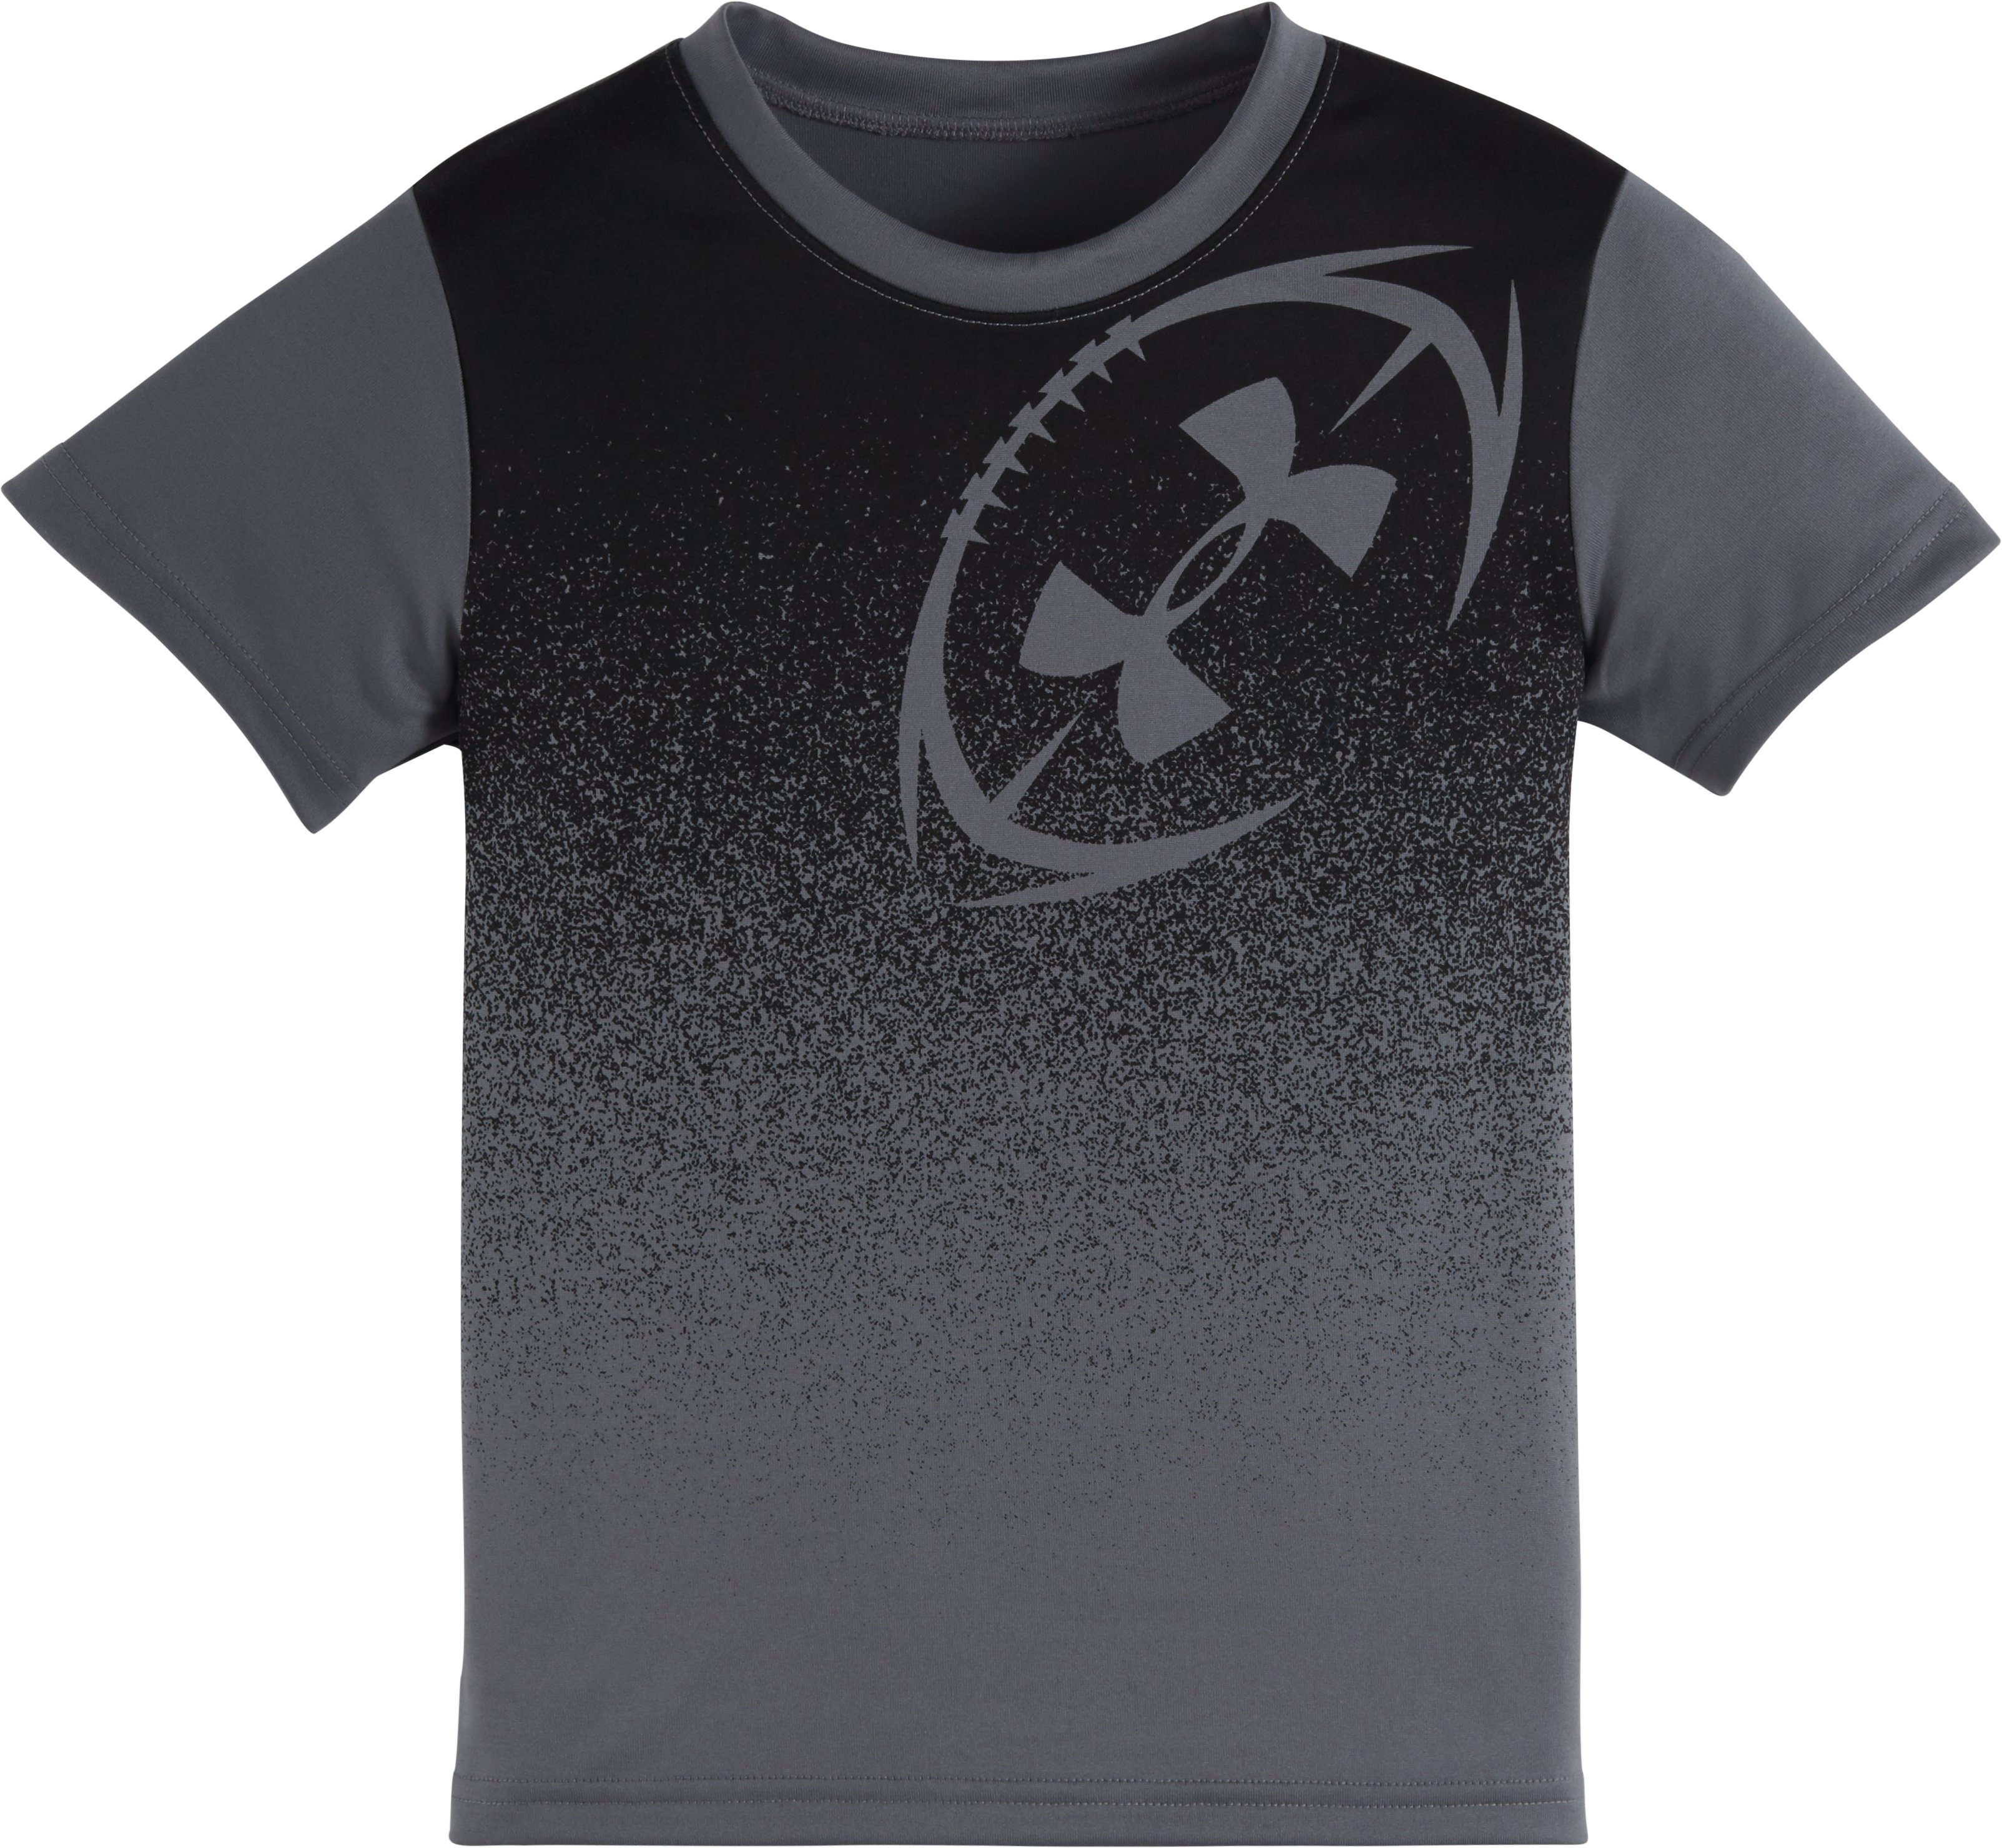 Boys' Pre-School UA Shoulder Hit Short Sleeve T-Shirt, Graphite